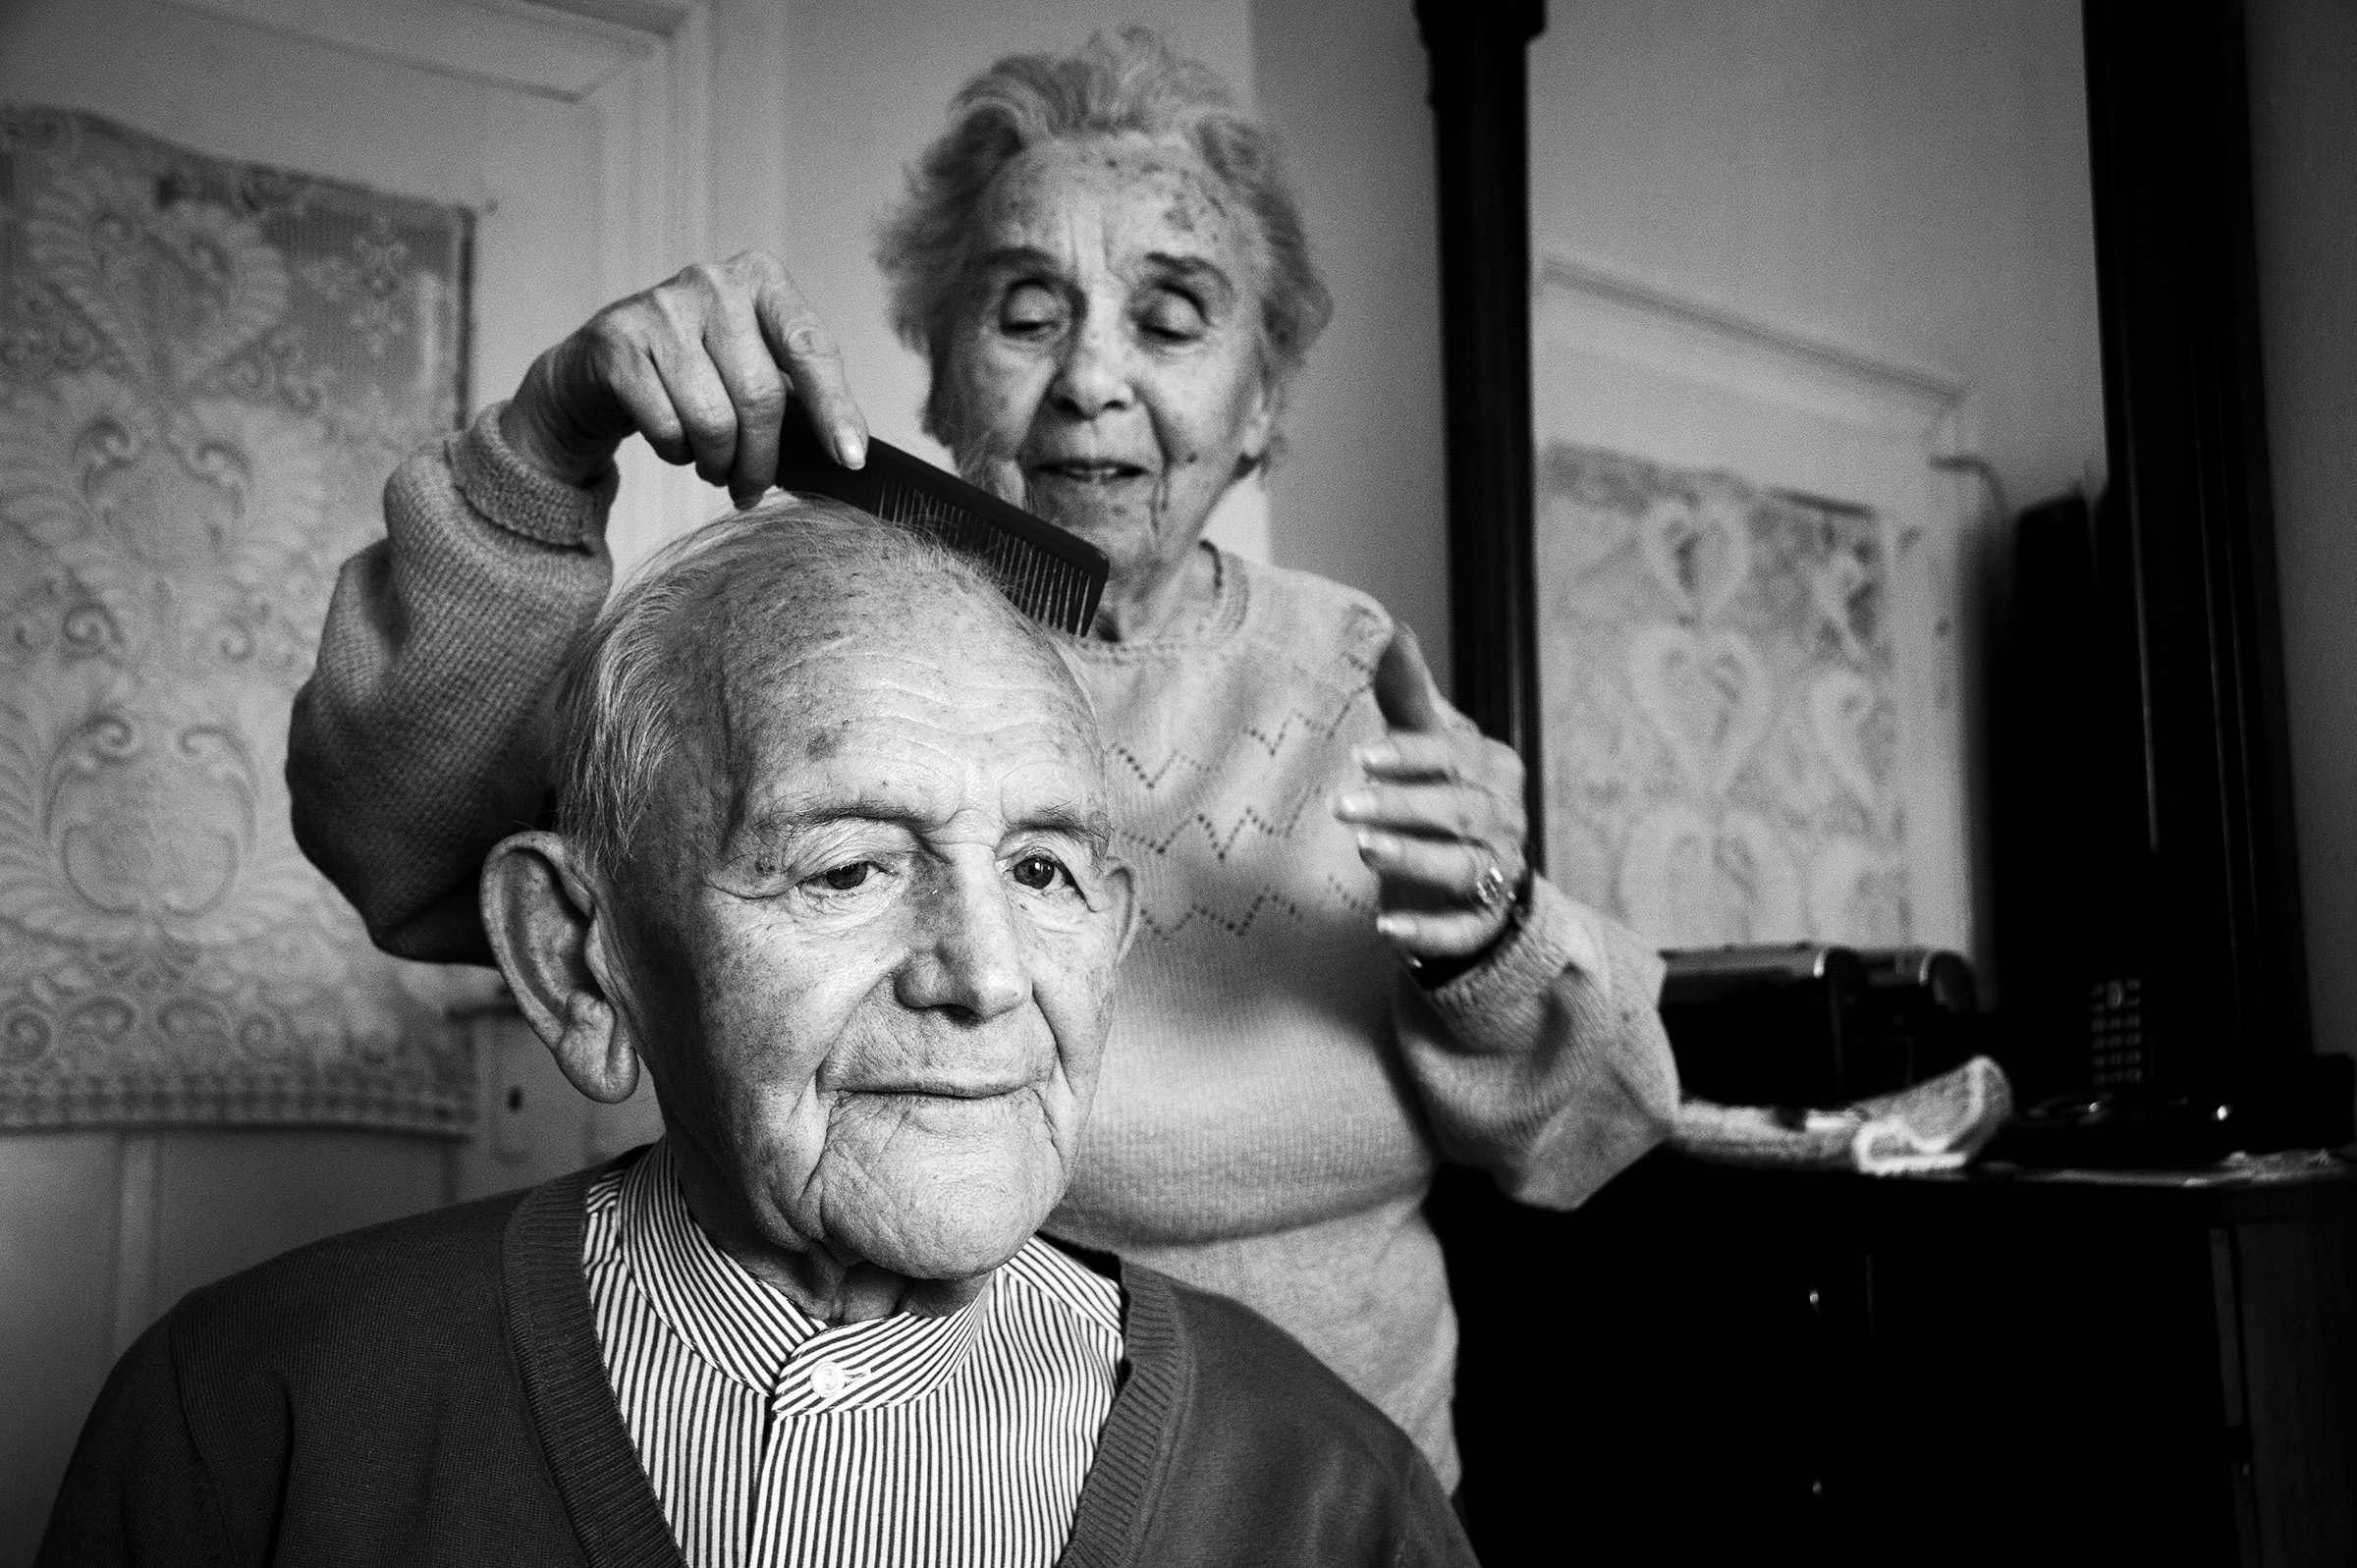 Elisabeta Steuer, 91, cares for her husband Ladislau, 94, at their home in downtown Oradea on January 16, 2015. Both survivors of the Holocaust, Ladislau was deported to a labor camp in Hungary while Elisabeta survived in a ghetto in the Romanian village of Ginta. They have been married for 66 years. (Photo by Daniel Owen/GroundTruth)